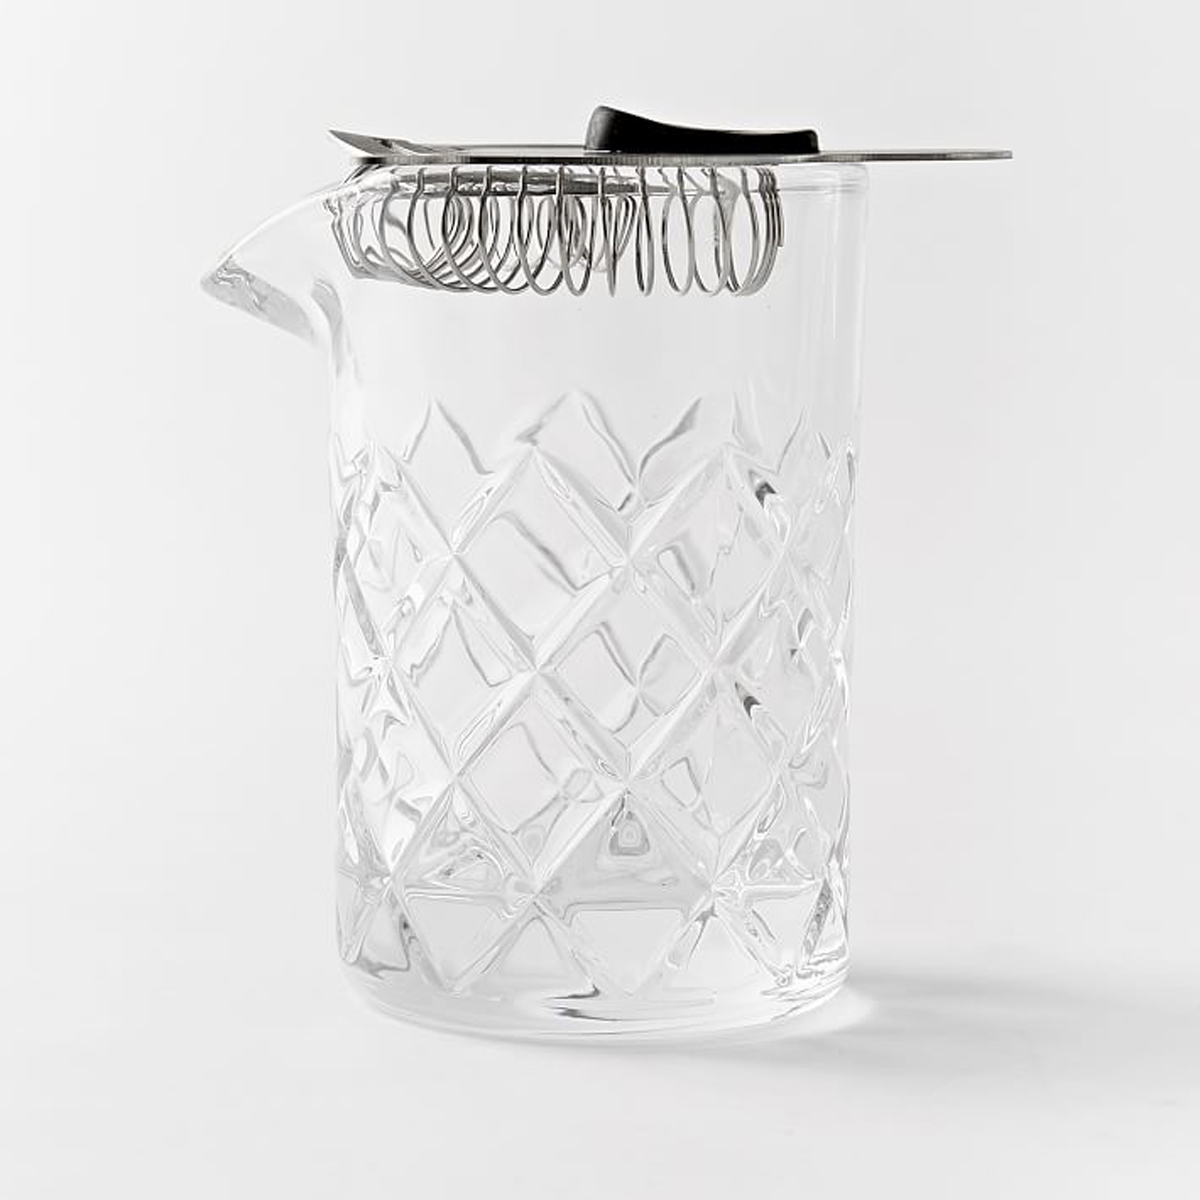 Every home bar needs a proper mixing glass, for drinks that are stirred instead of shaken. This one is a class act that comes with a Hawthorne strainer and looks great on any bar cart or bar cabinet.West Elm Essential Barware, Yarai Mixing Pitcher + Hawthorne Strainer, $23 at westelm.com